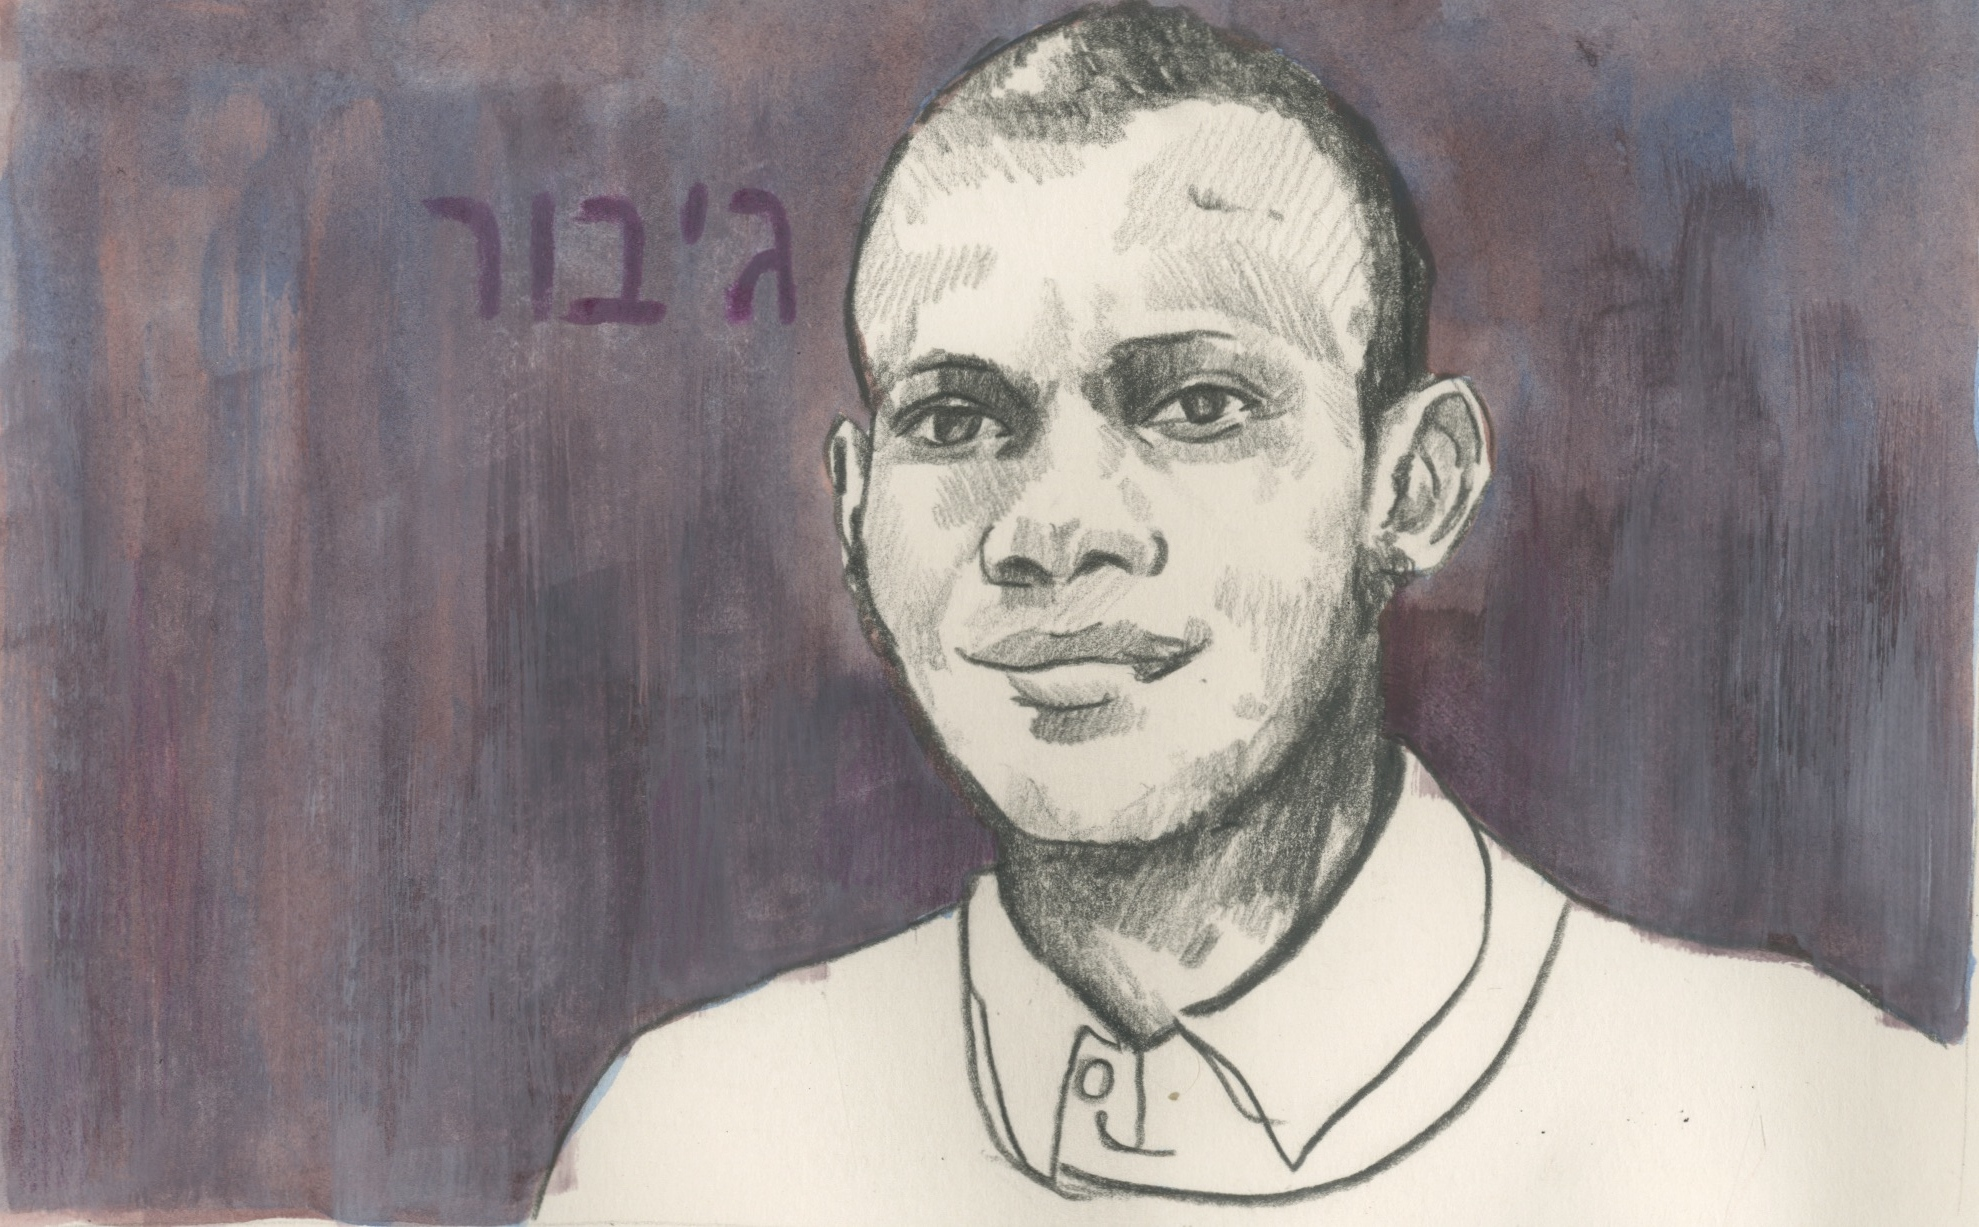 15/01/15 Lassana Bathily, an immigrant from Mali, who saved the lives of several French Jews in Paris during a terrorist attack in a kosher supermarket.